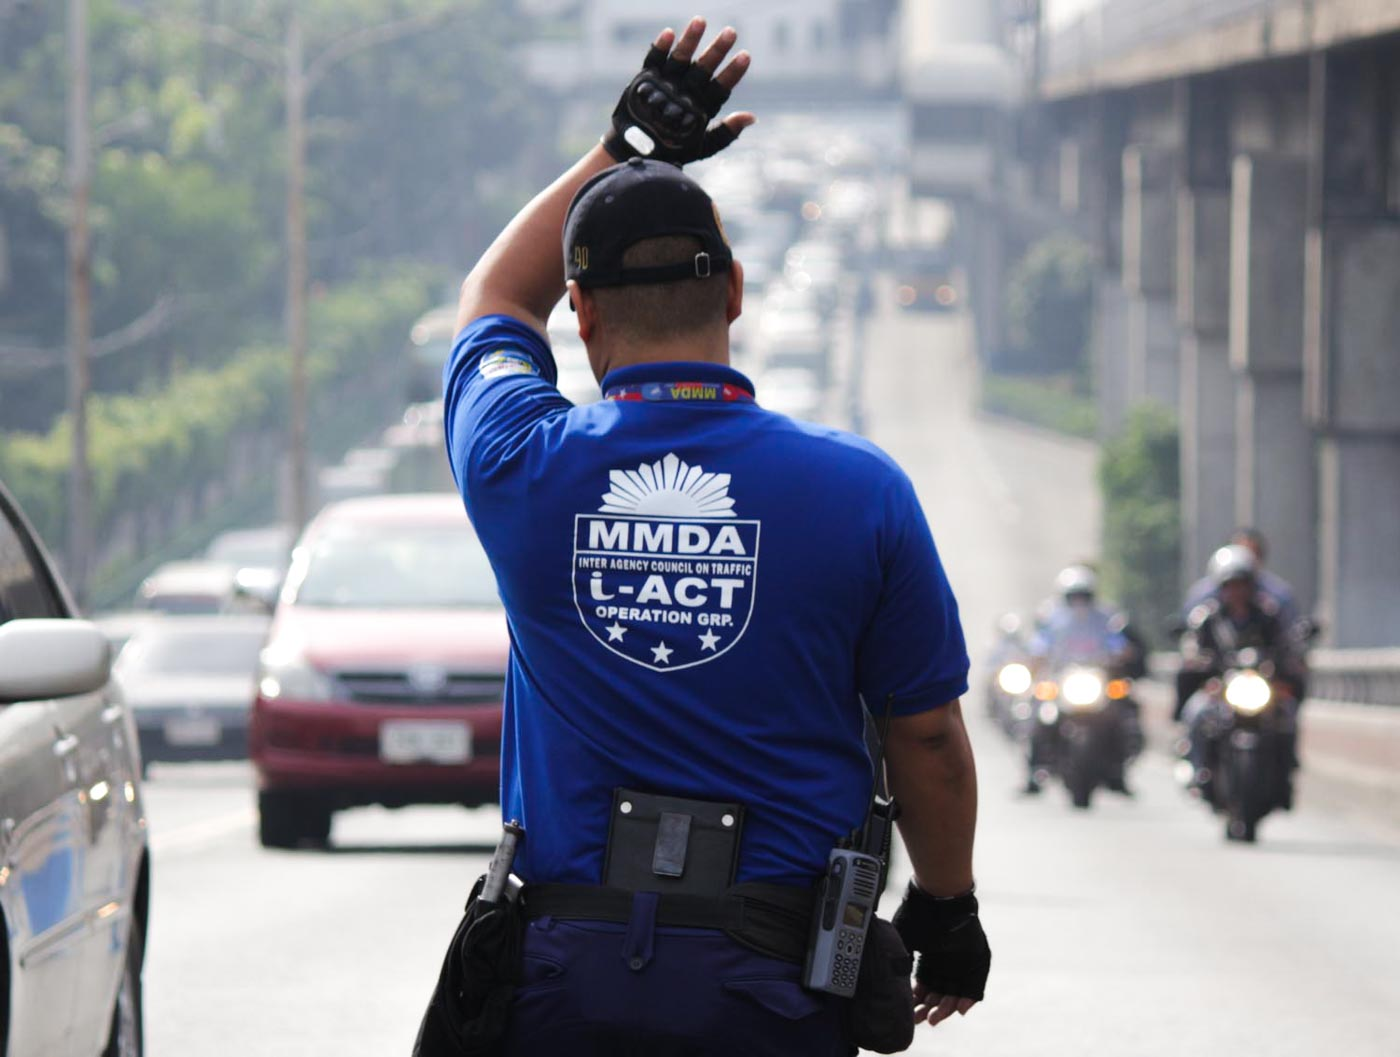 MMDA. A traffic enforcer manages traffic along EDSA. Photo by Darren Langit/Rappler